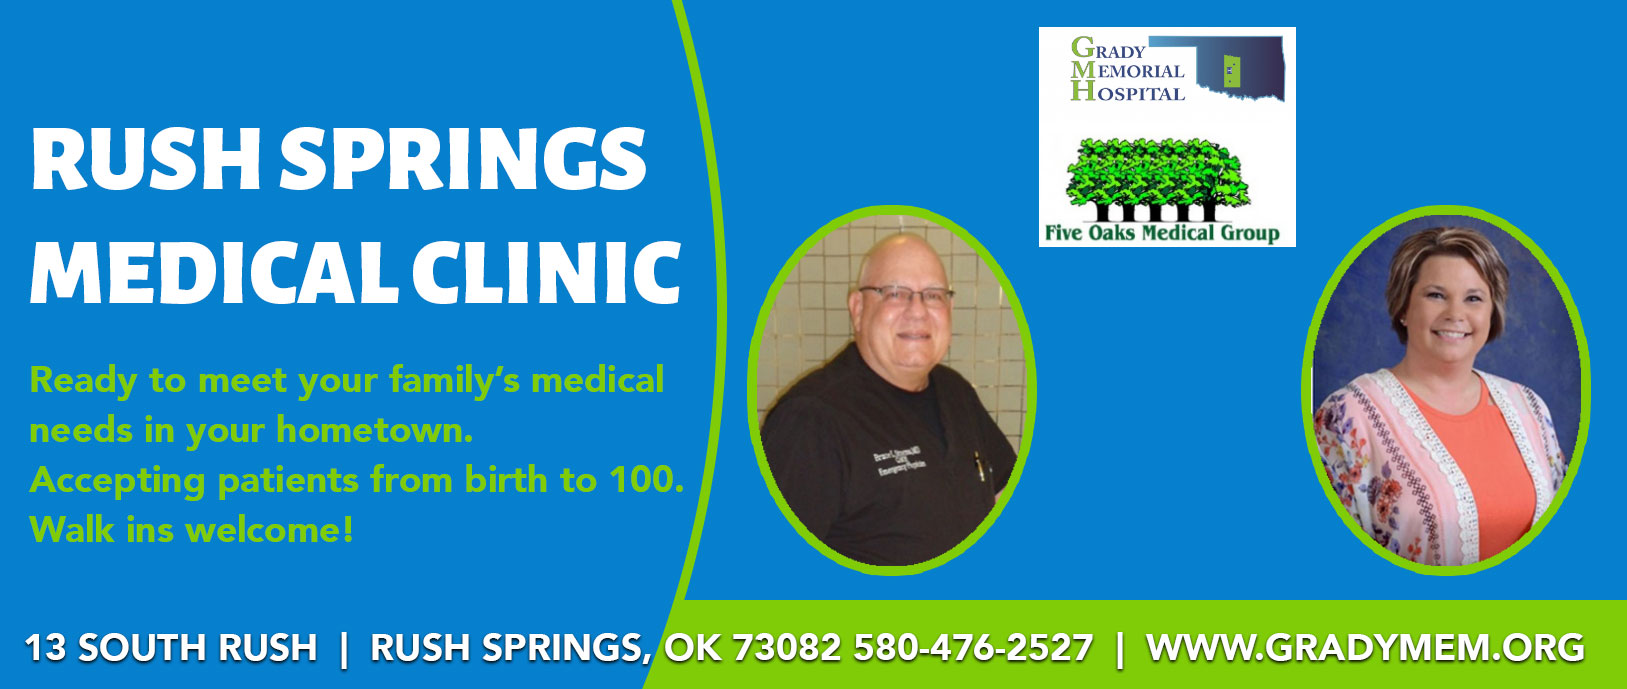 Rush Springs Medical Clinic  Ready to meet your family's medical needs in your hometown. Accepting patients from birth to 100. Walk ins welcome!  13 South Rush |  Rush Springs, OK 73082 580-476-2527  |  WWW.GRADYMEM.ORG